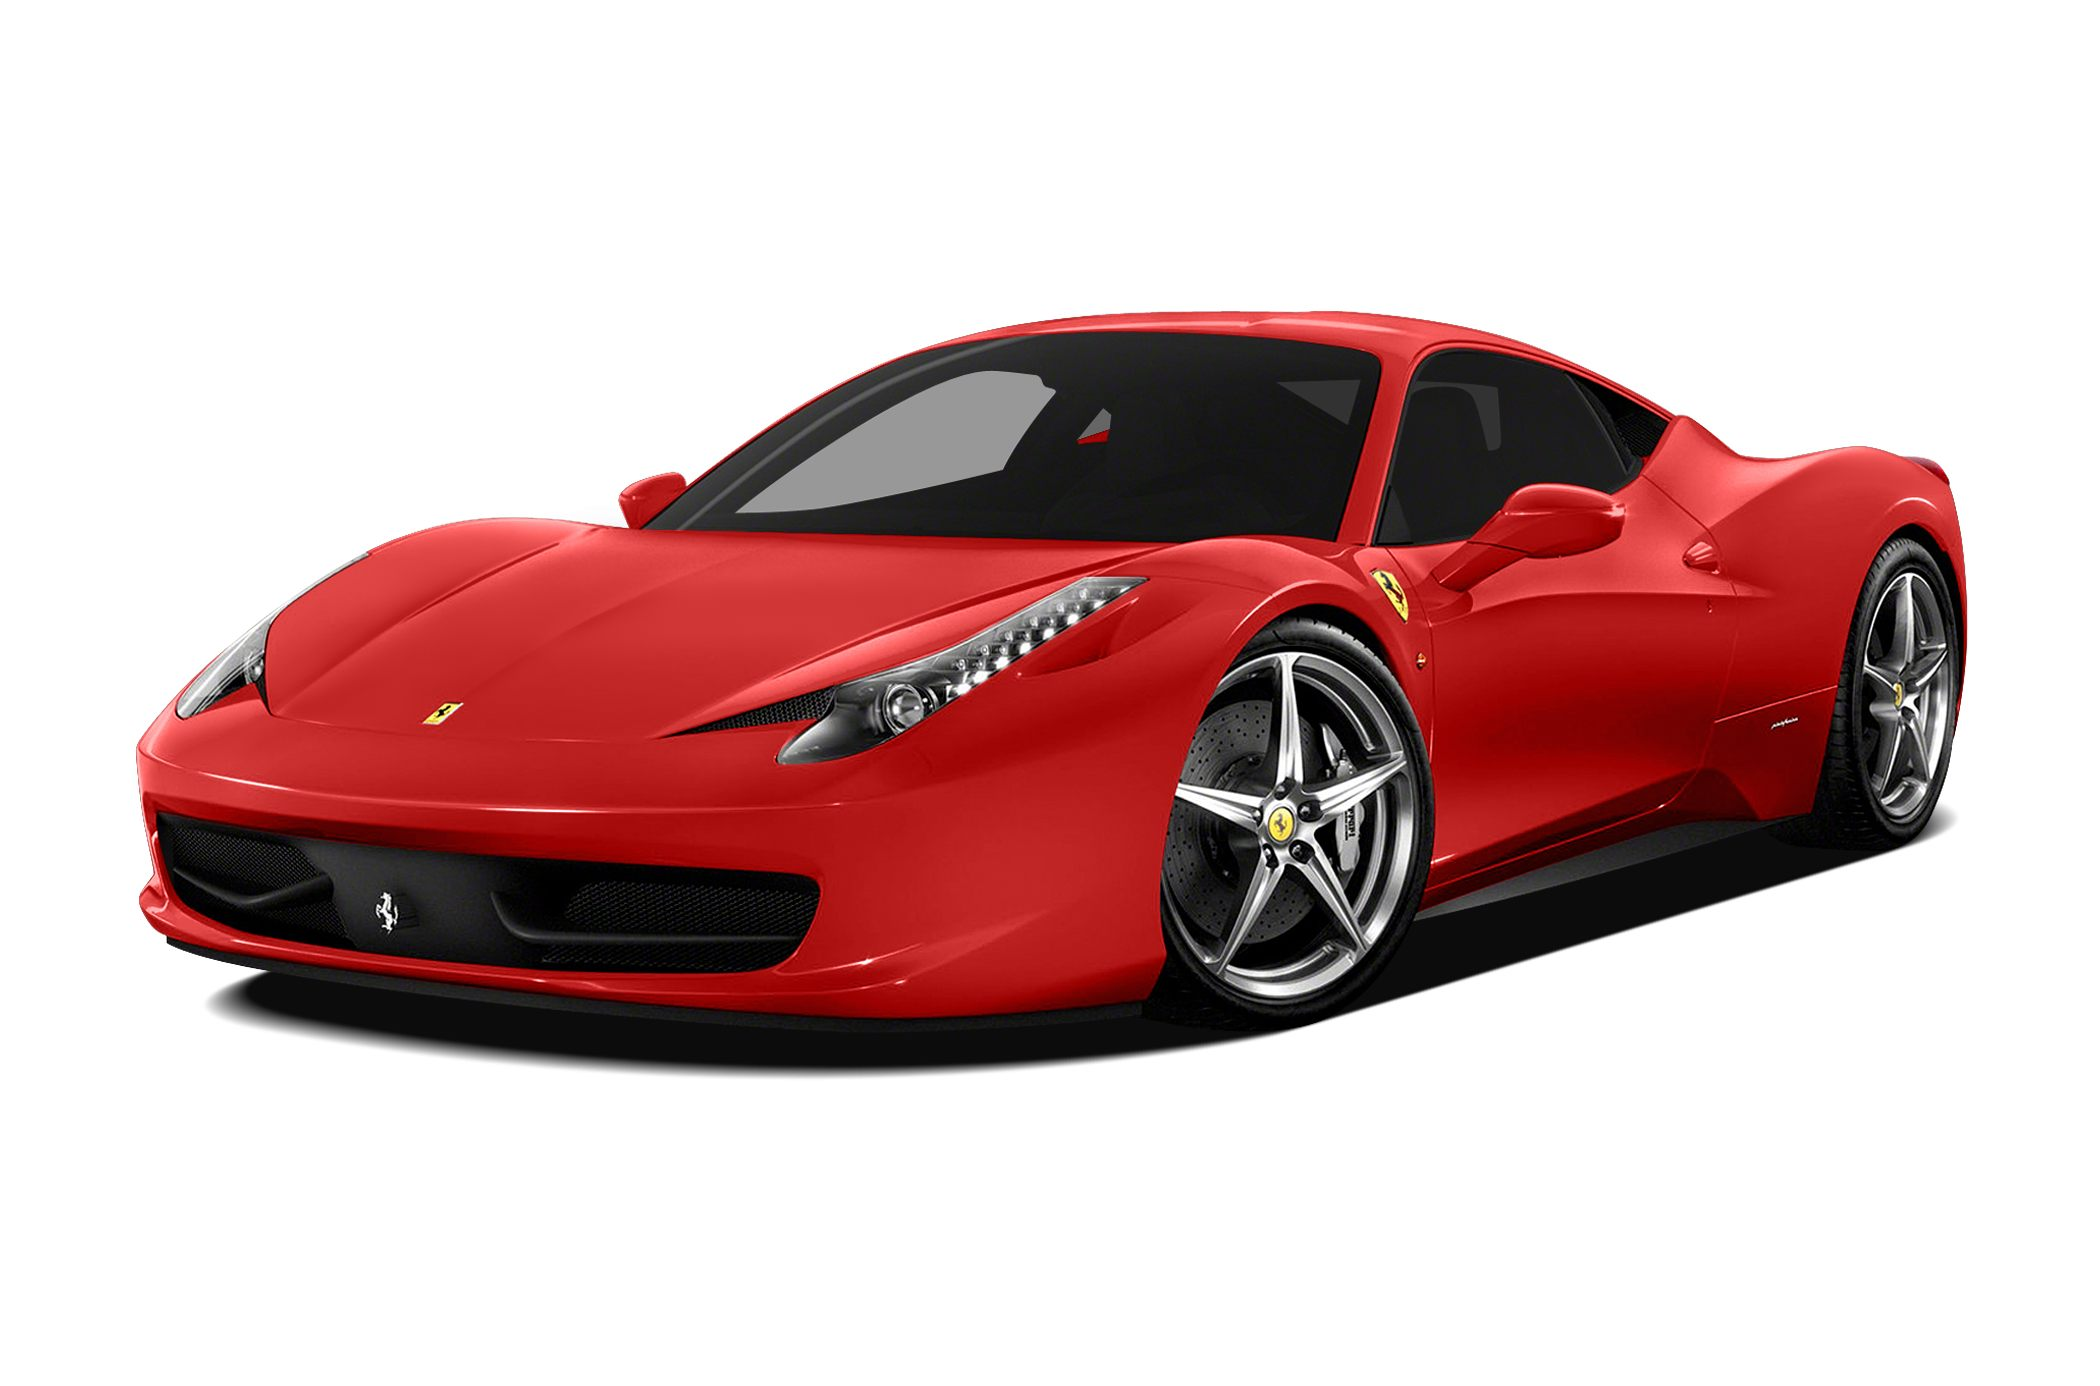 2012 ferrari 458 italia. Cars Review. Best American Auto & Cars Review